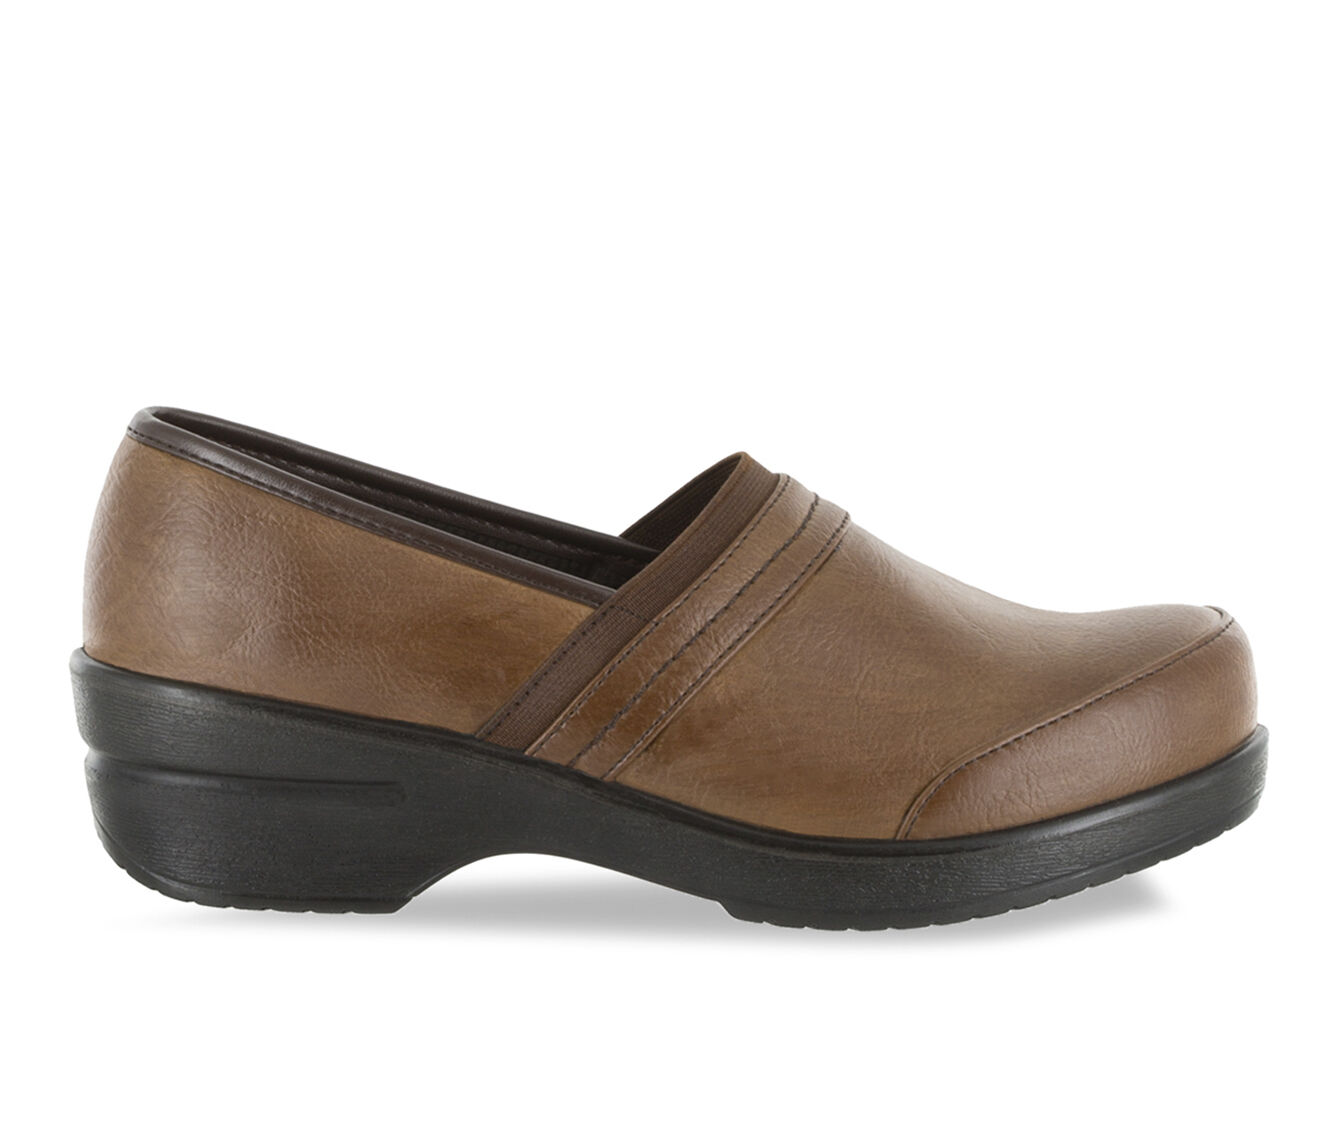 shop authentic new style Women's Easy Street Origin Clogs Tan Burnished